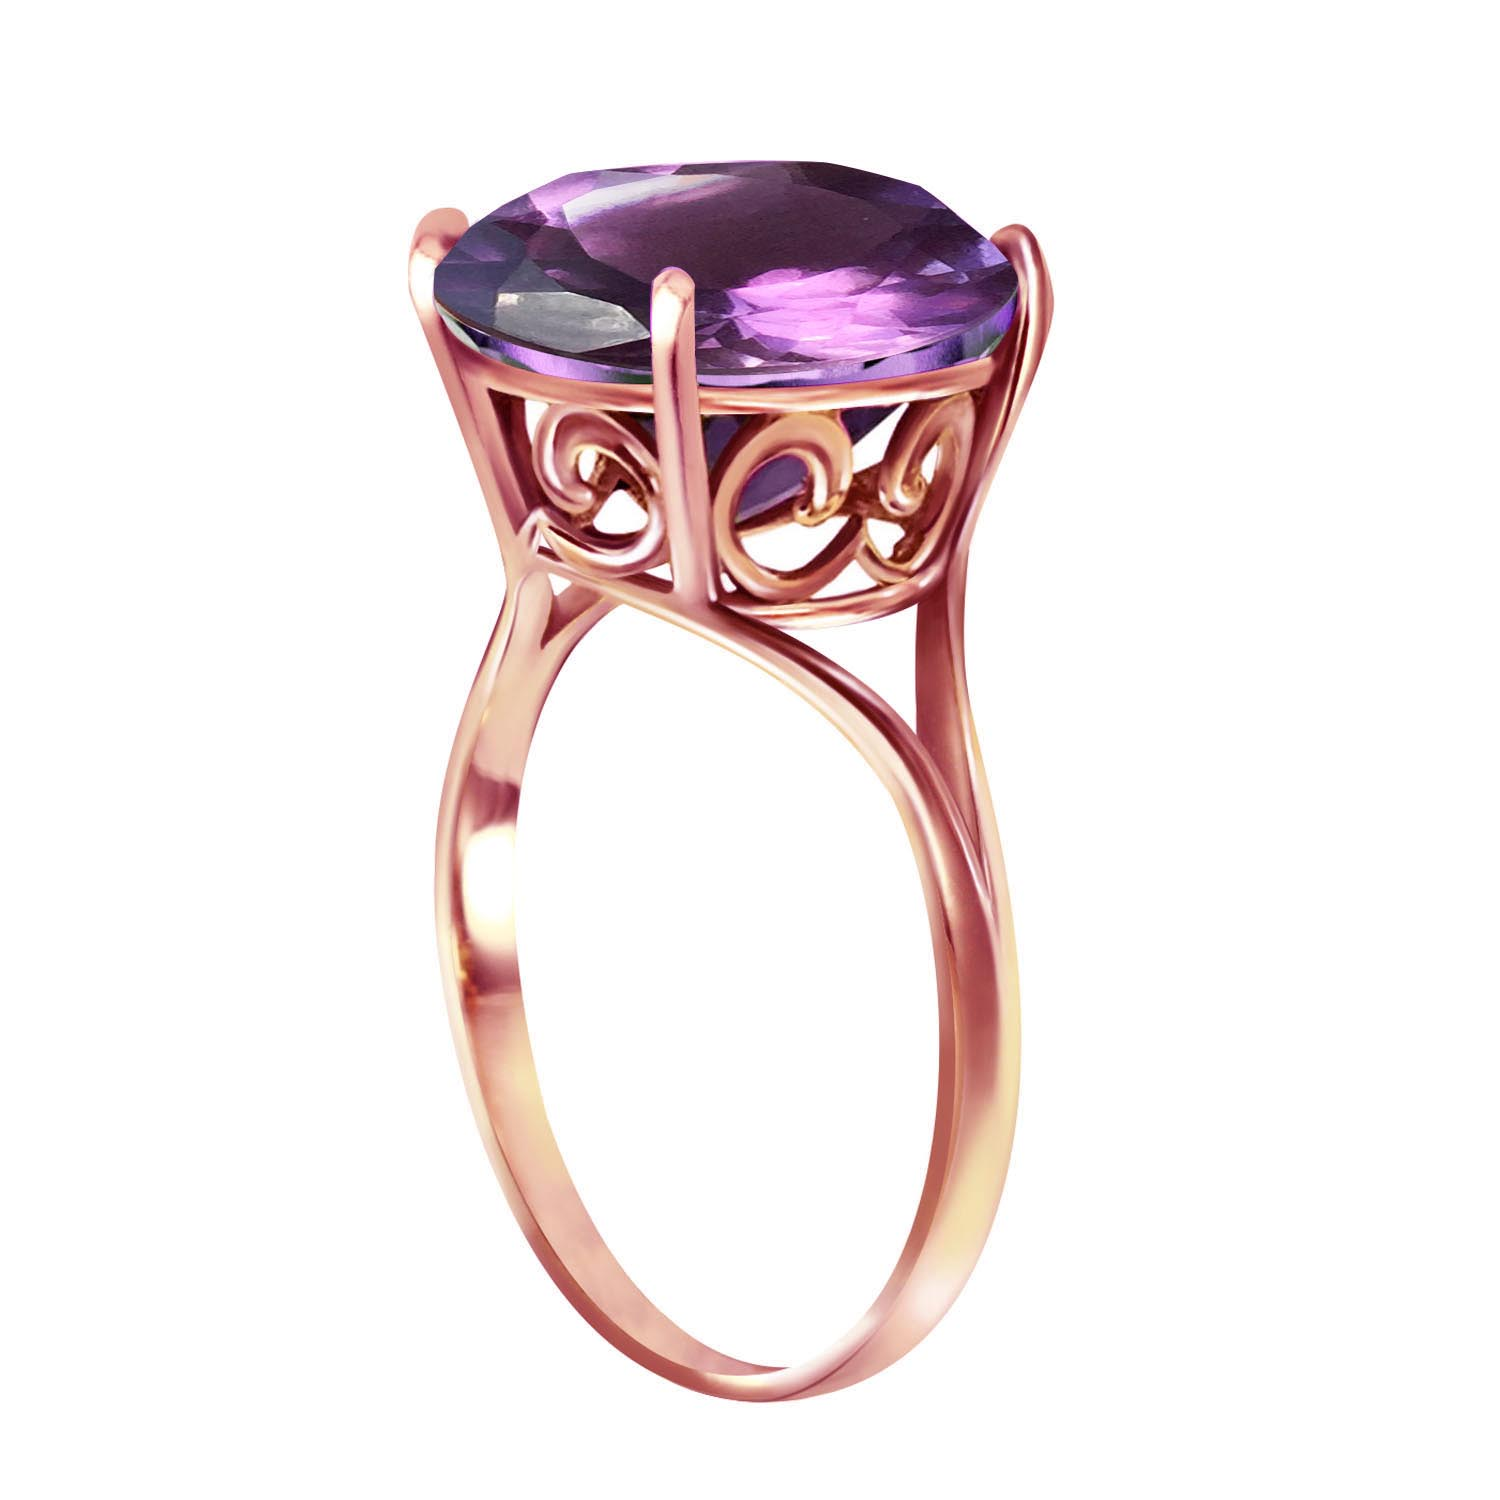 Round Brilliant Cut Amethyst Ring 5.5ct in 14K Rose Gold